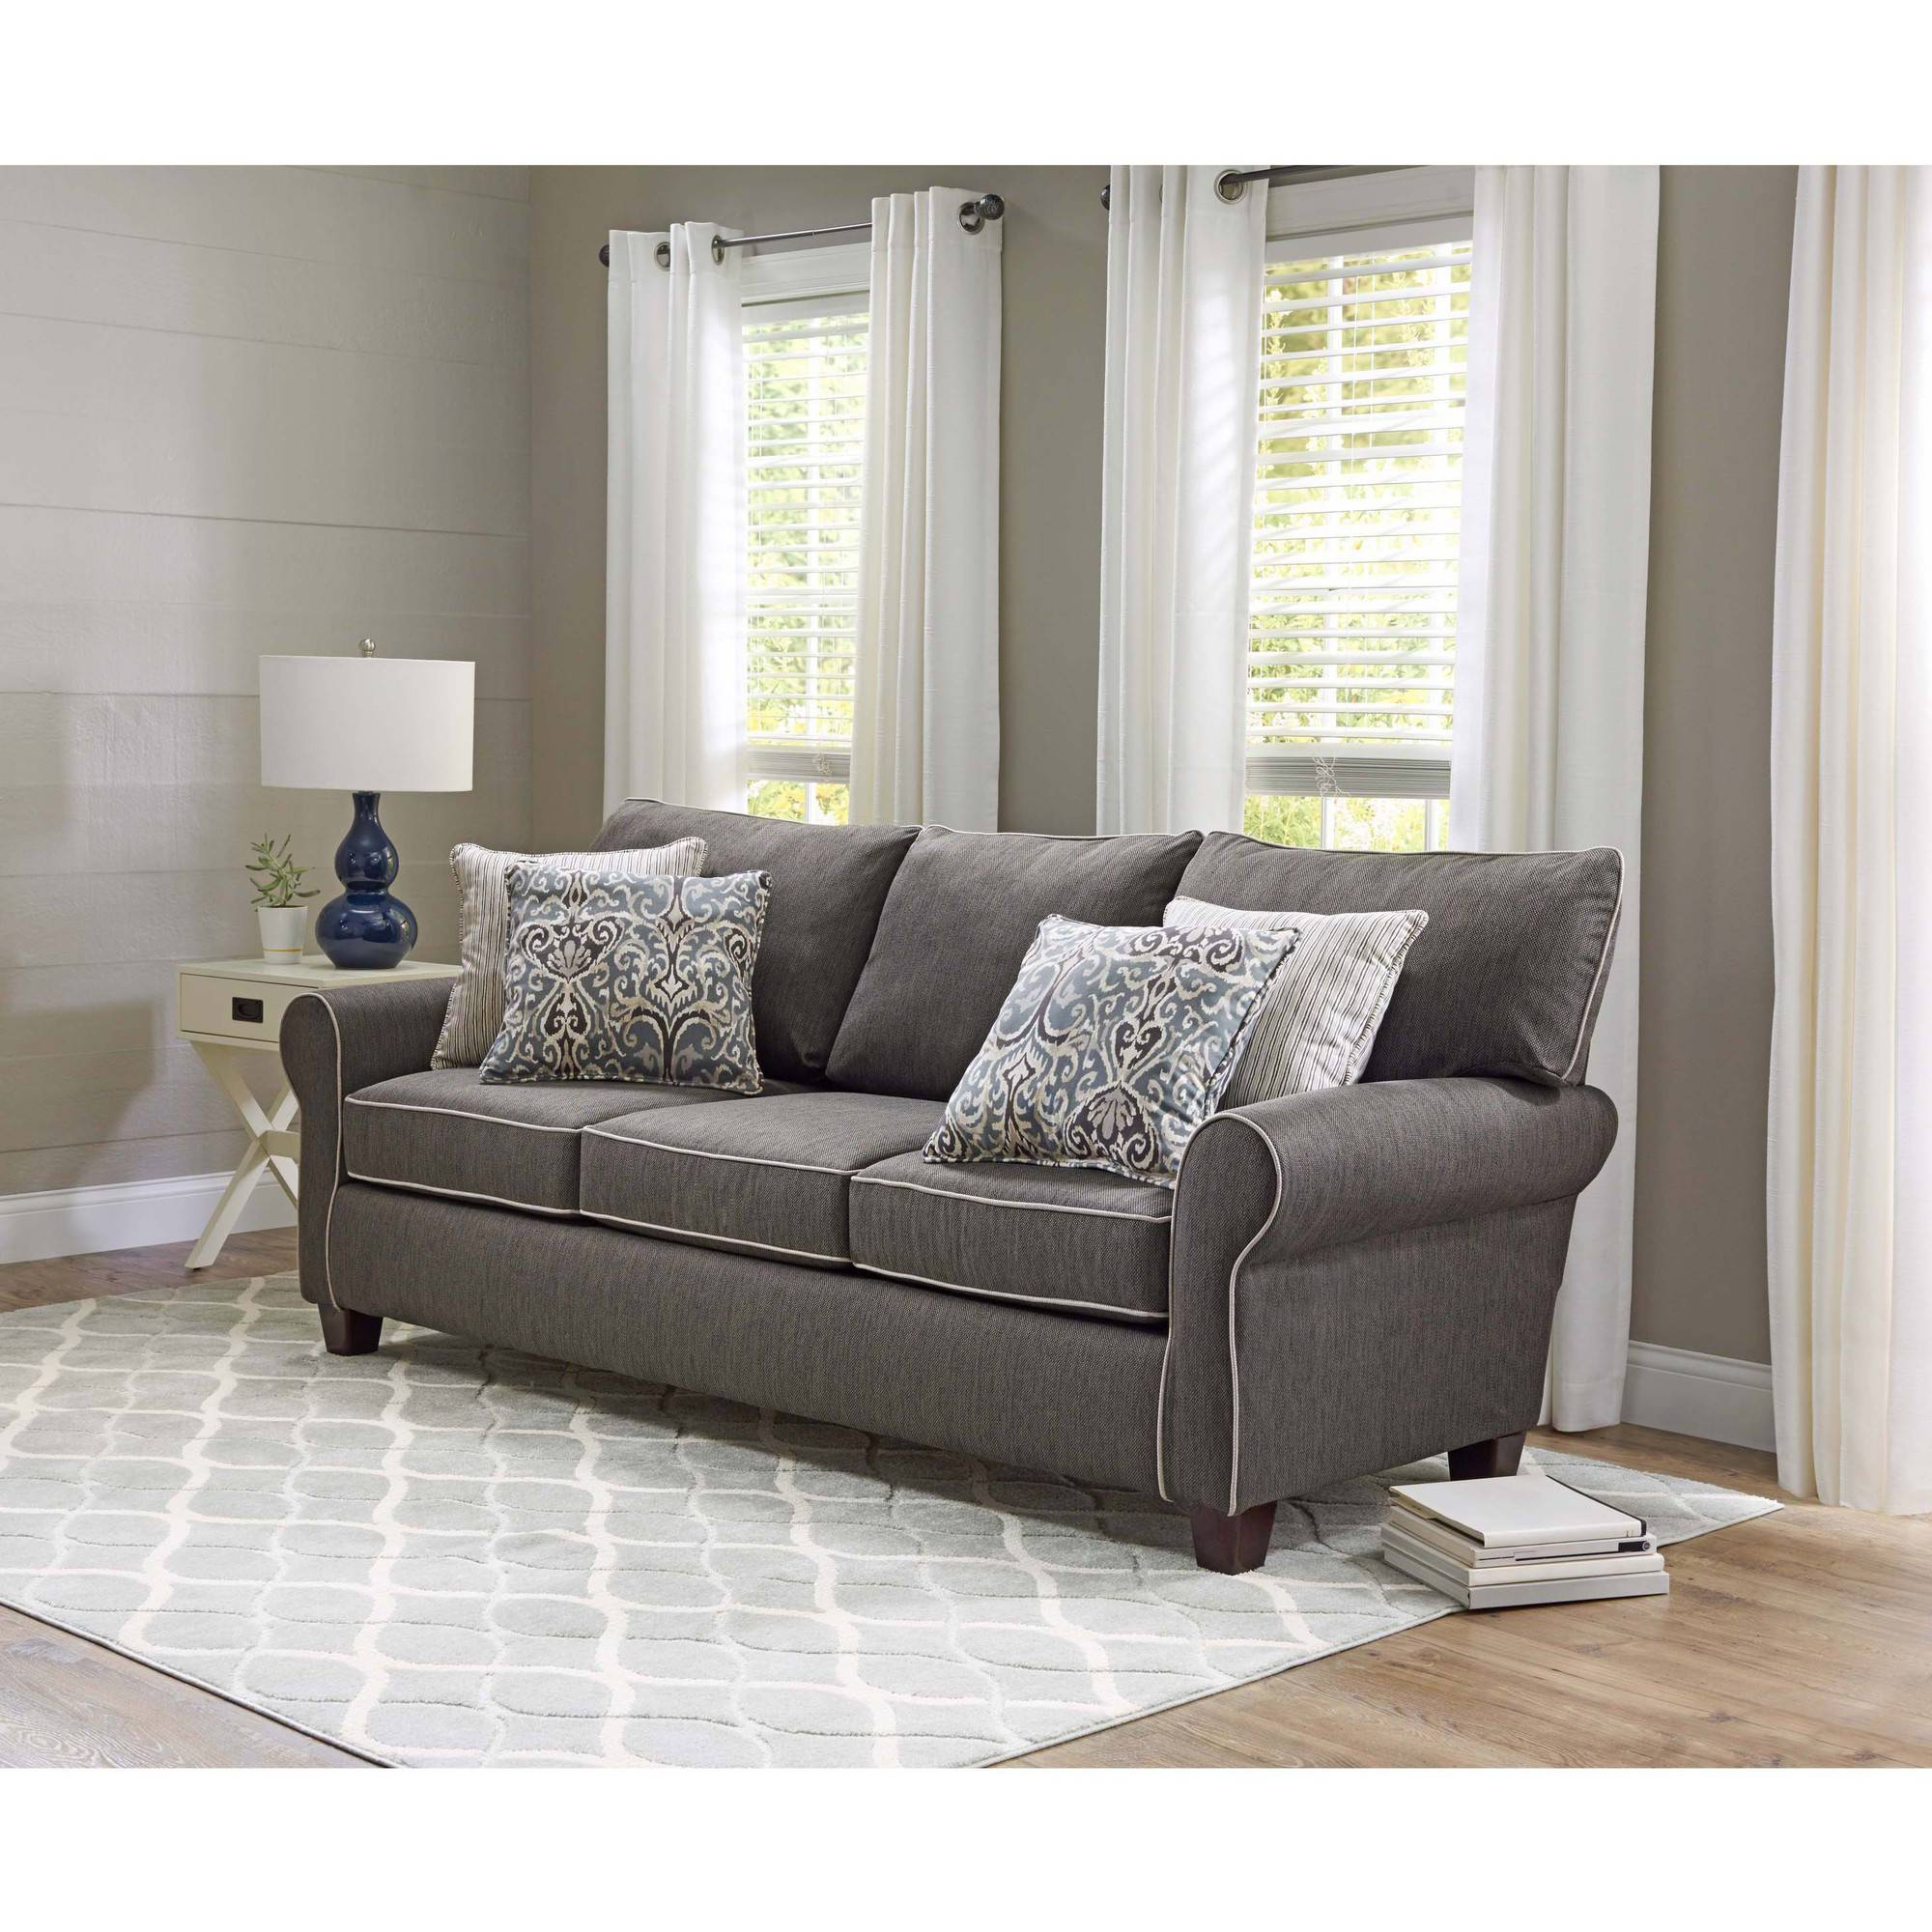 Chair Impressive Couches Walmart With Astounding Remark For Awesome pertaining to Living Room Set Covers